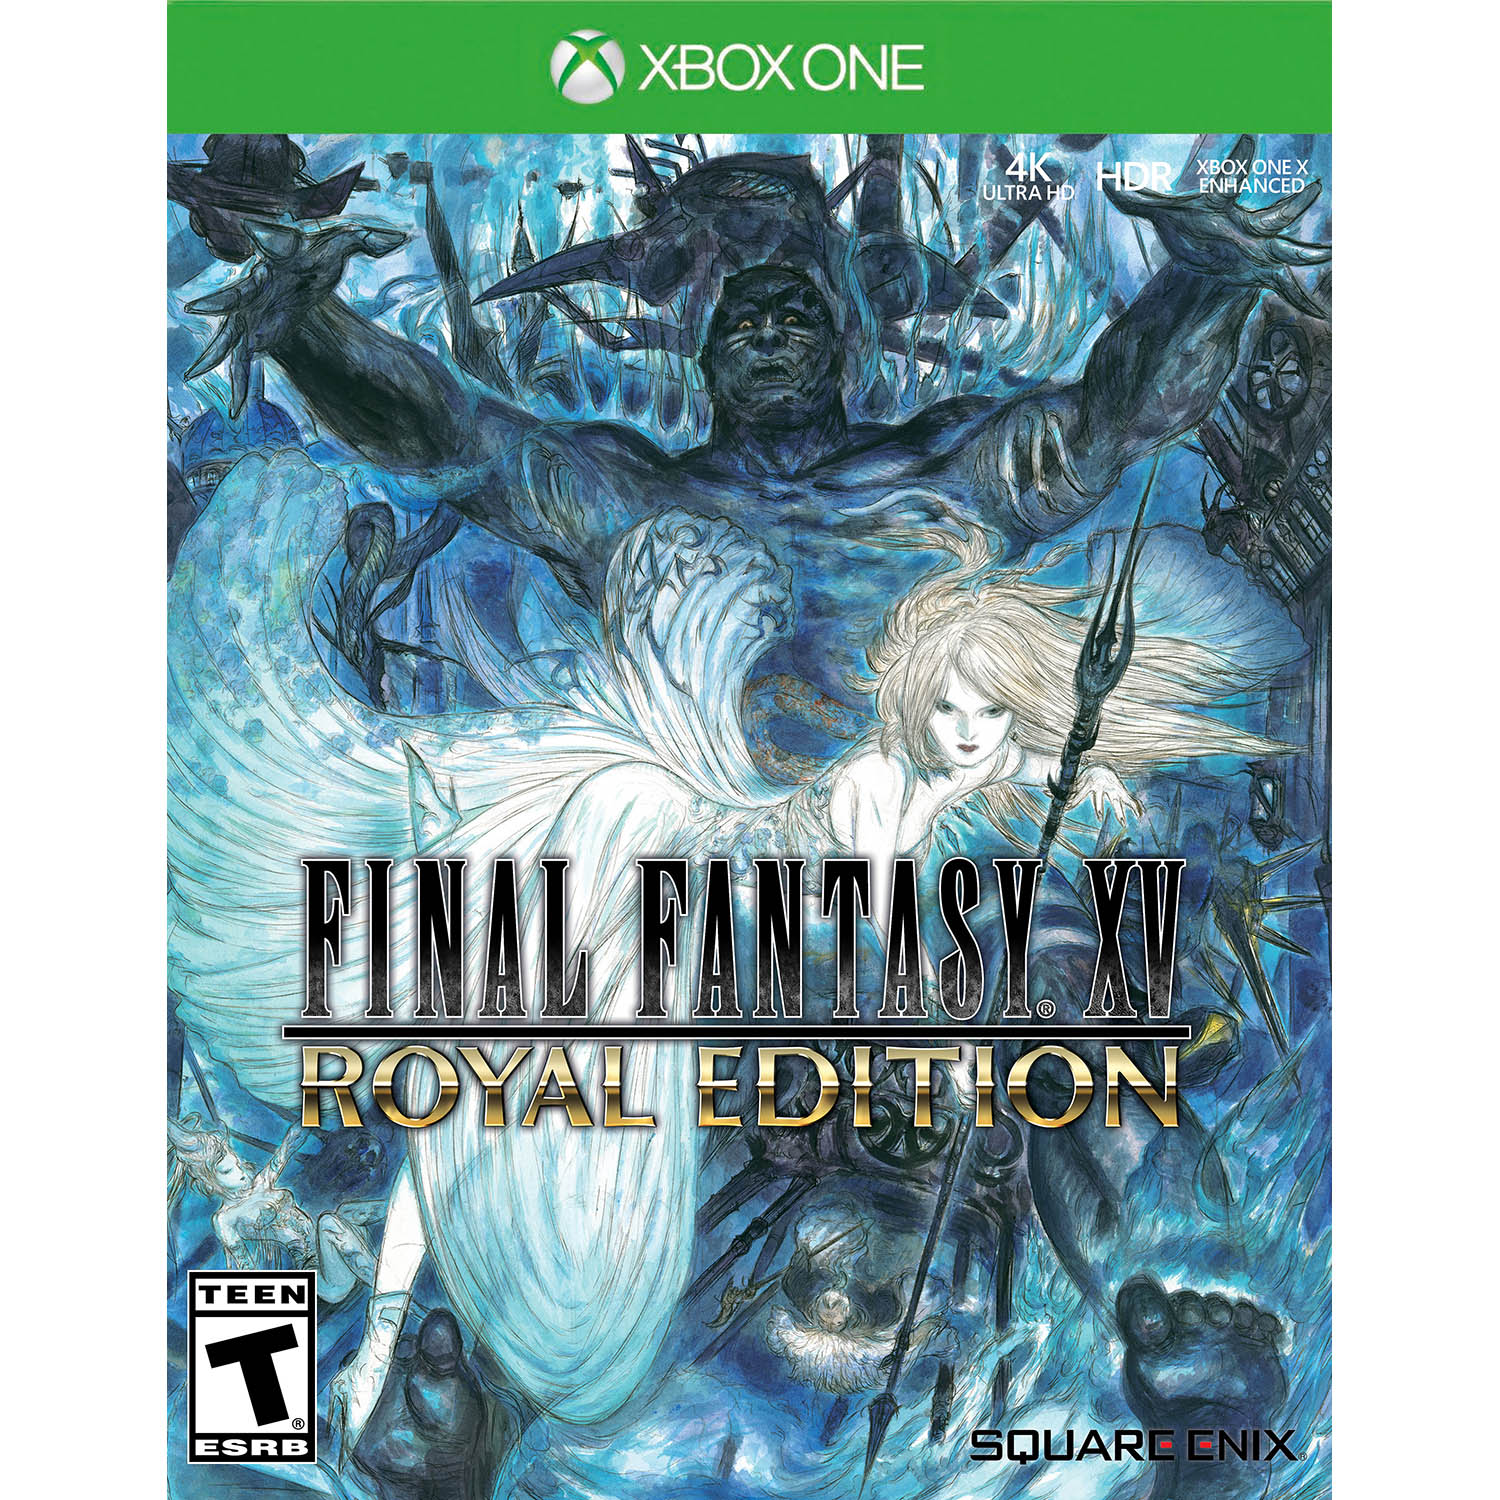 Final Fantasy XV Royal Edition, Square Enix, Xbox One, 662248920801